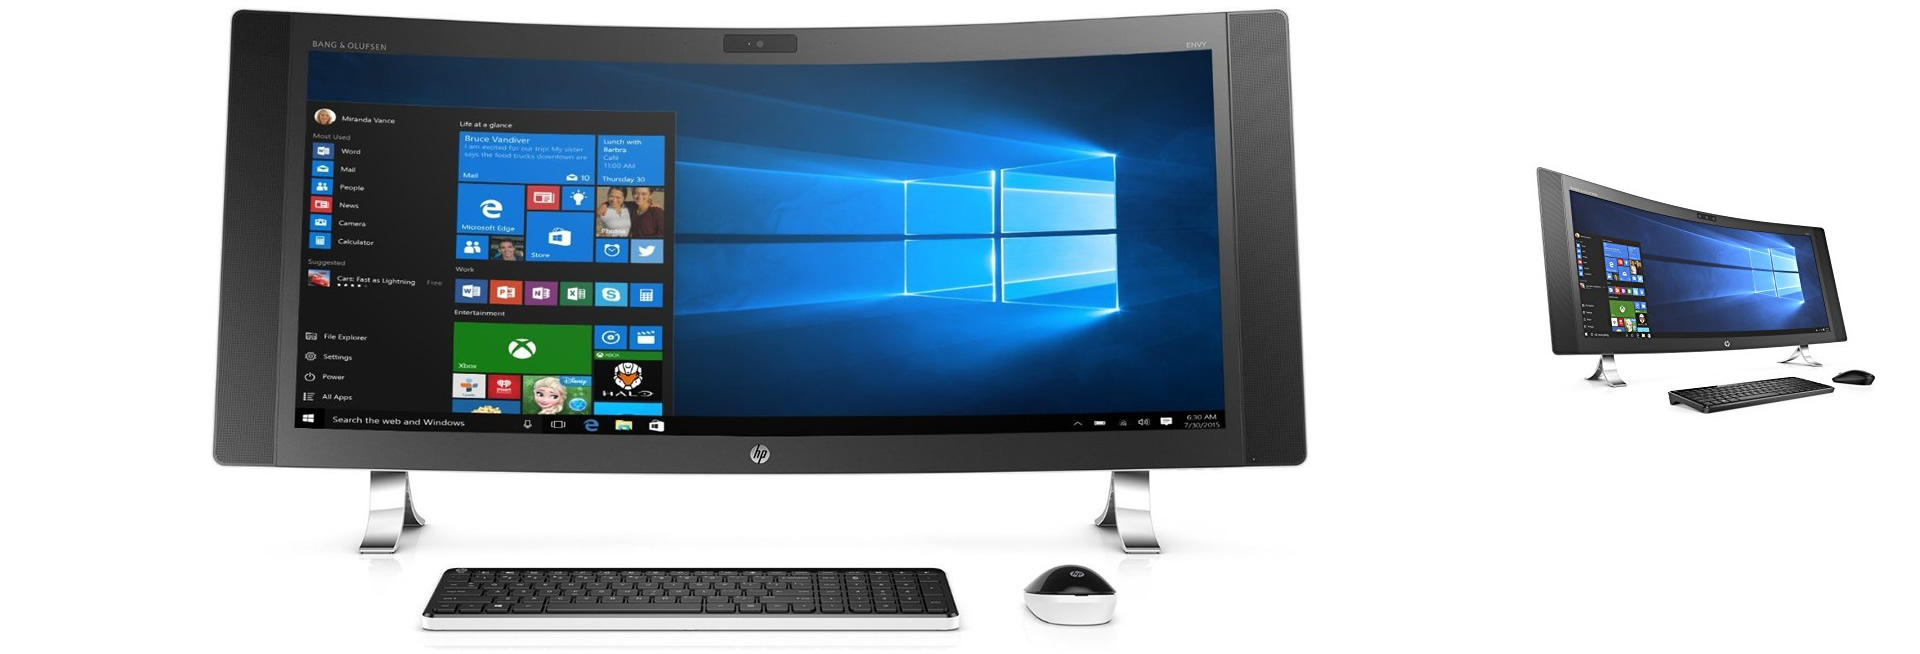 HP ENVY ALL IN ONE DESKTOP PC